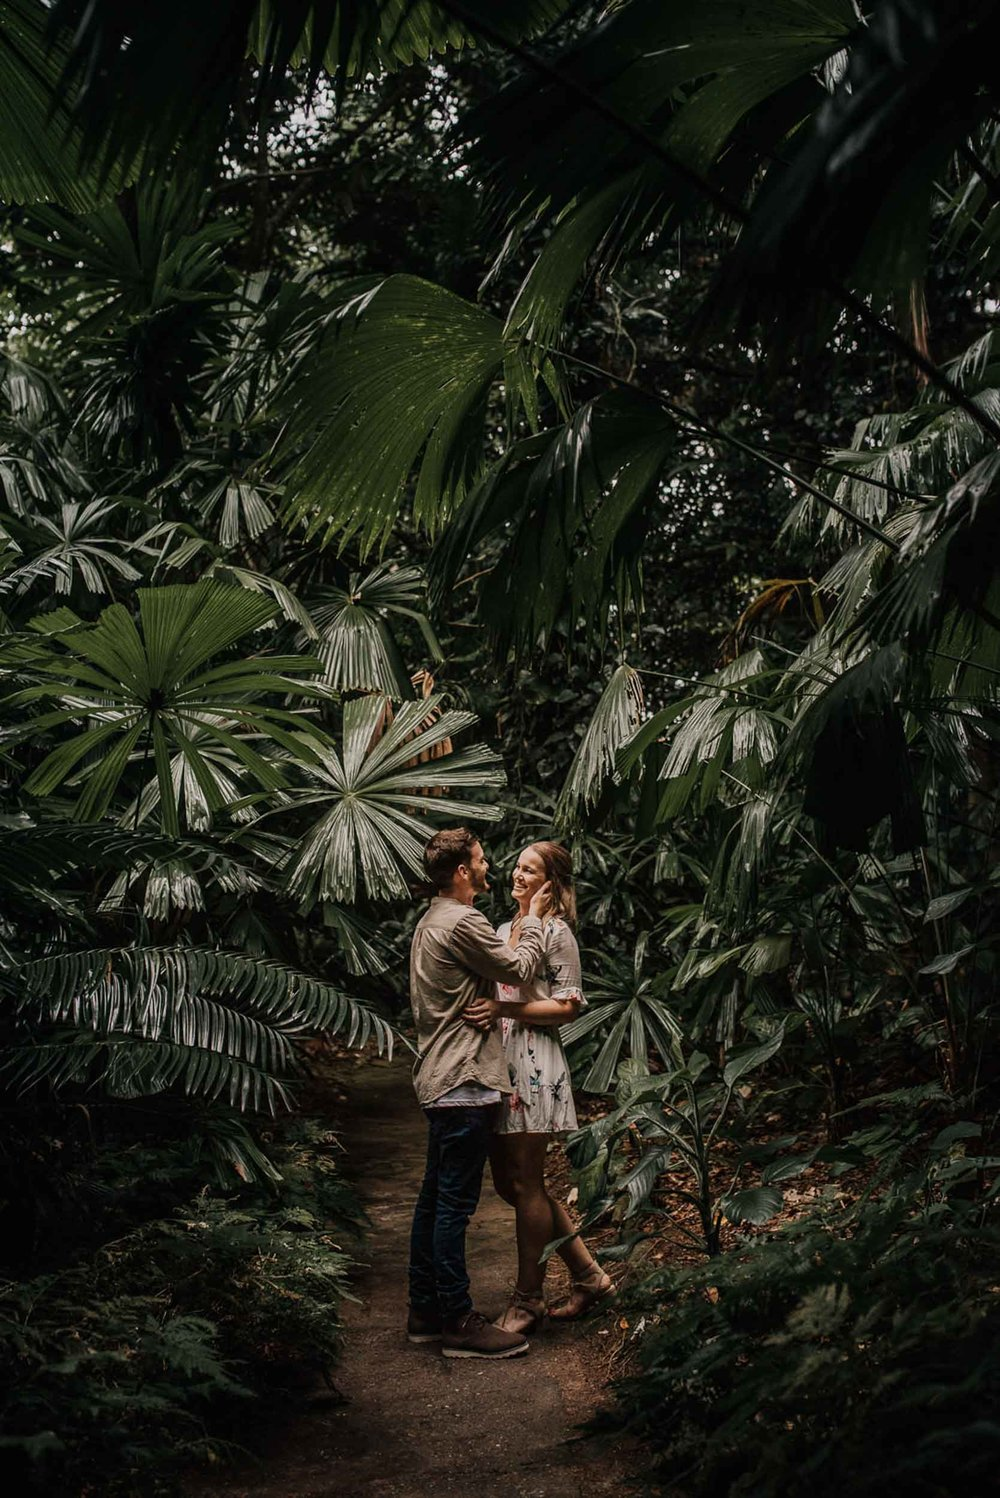 The Raw Photographer - Wedding Photographer - Botanical Gardens Engagement- Couple Session Photos in Cairns - Engaged Price - Rainforest Queensland - photoshoot-6.jpg